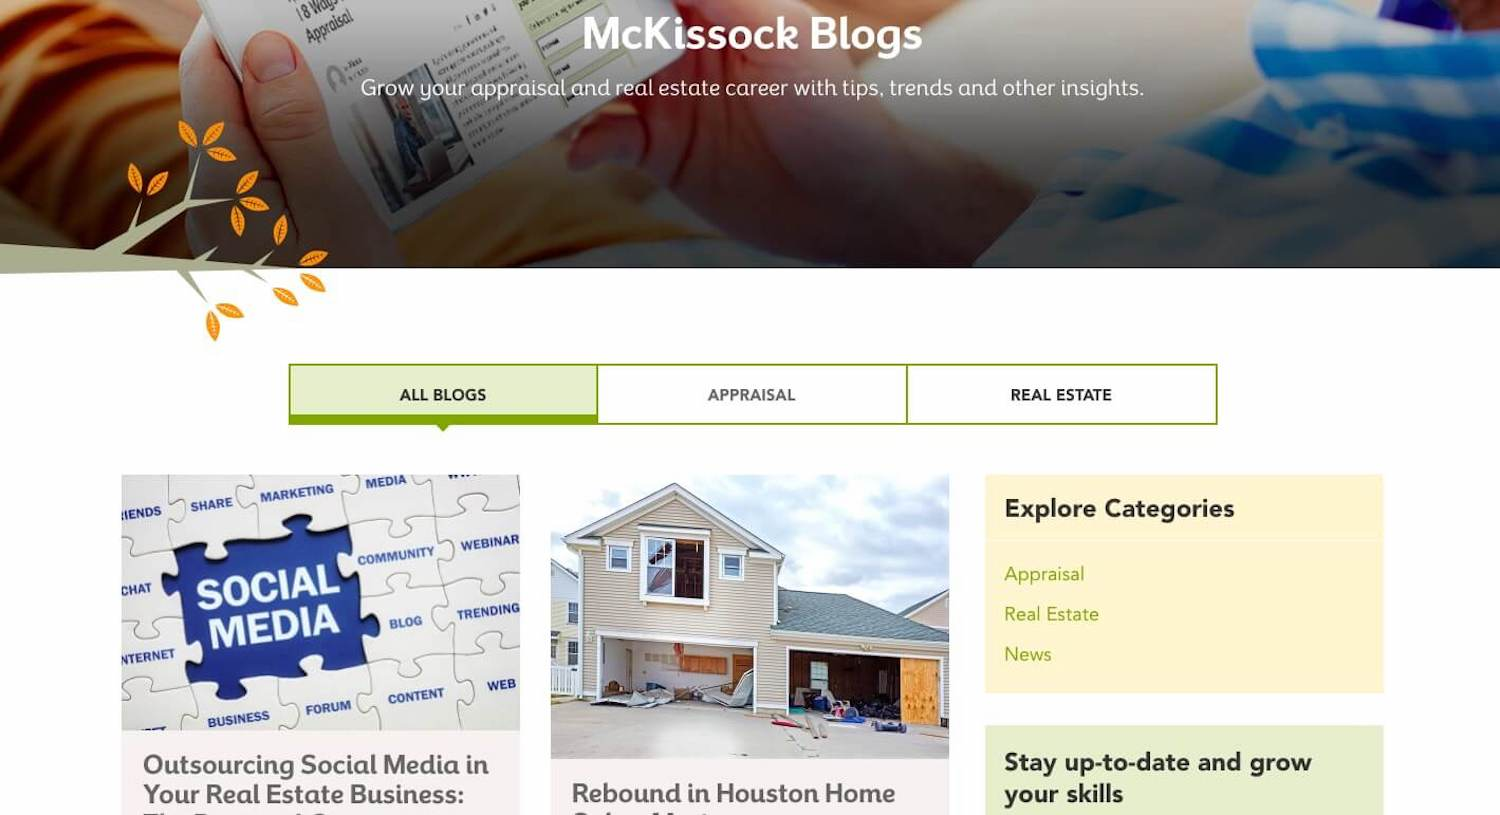 mckissock-blog_best-real-estate-blogs.jpeg